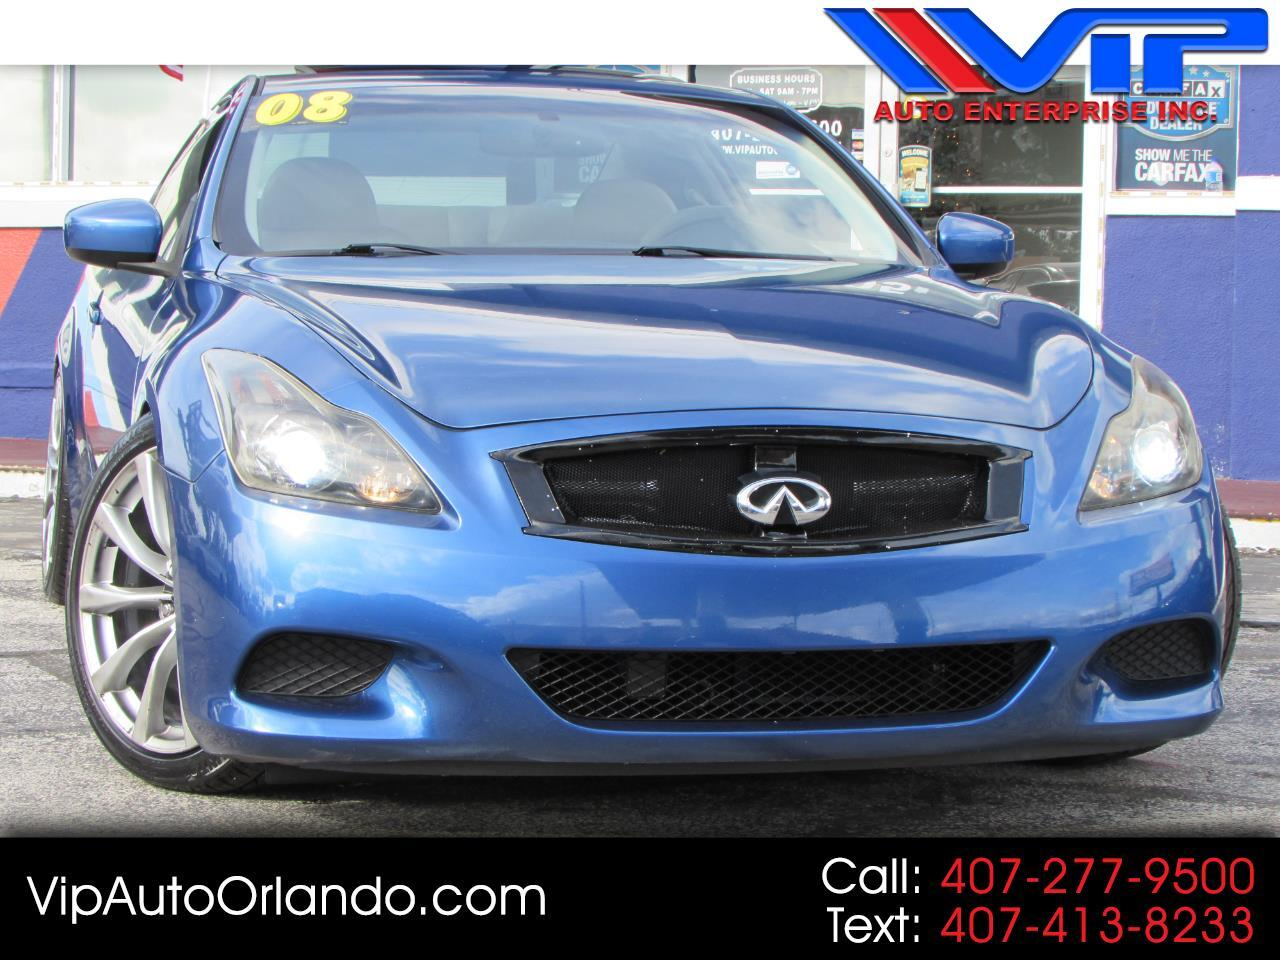 2008 Infiniti G37 Coupe 2dr Sport S